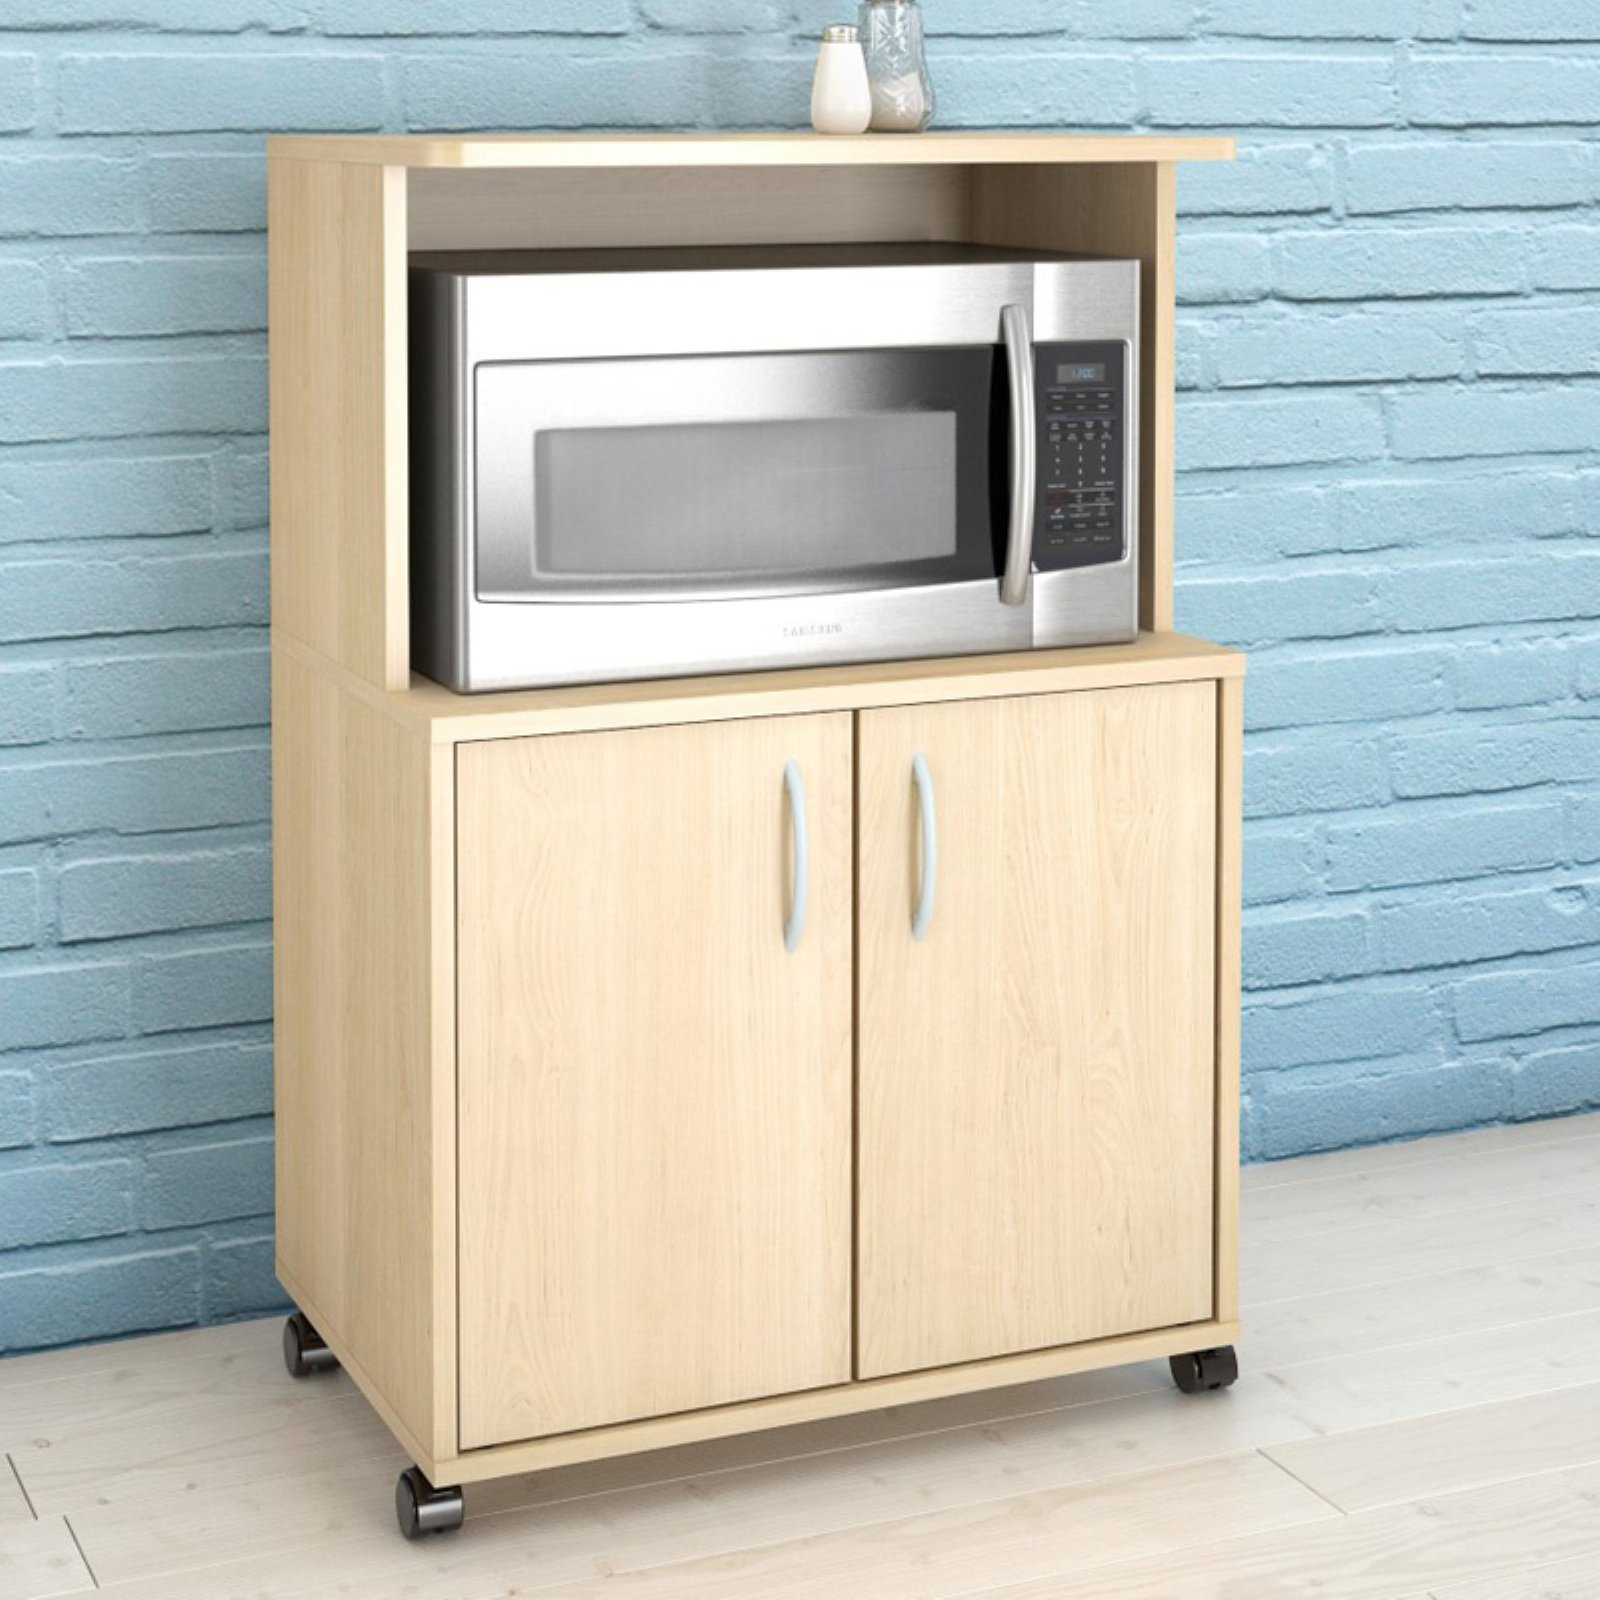 Perfect Microwave Kitchen Cart With Storage, Pine